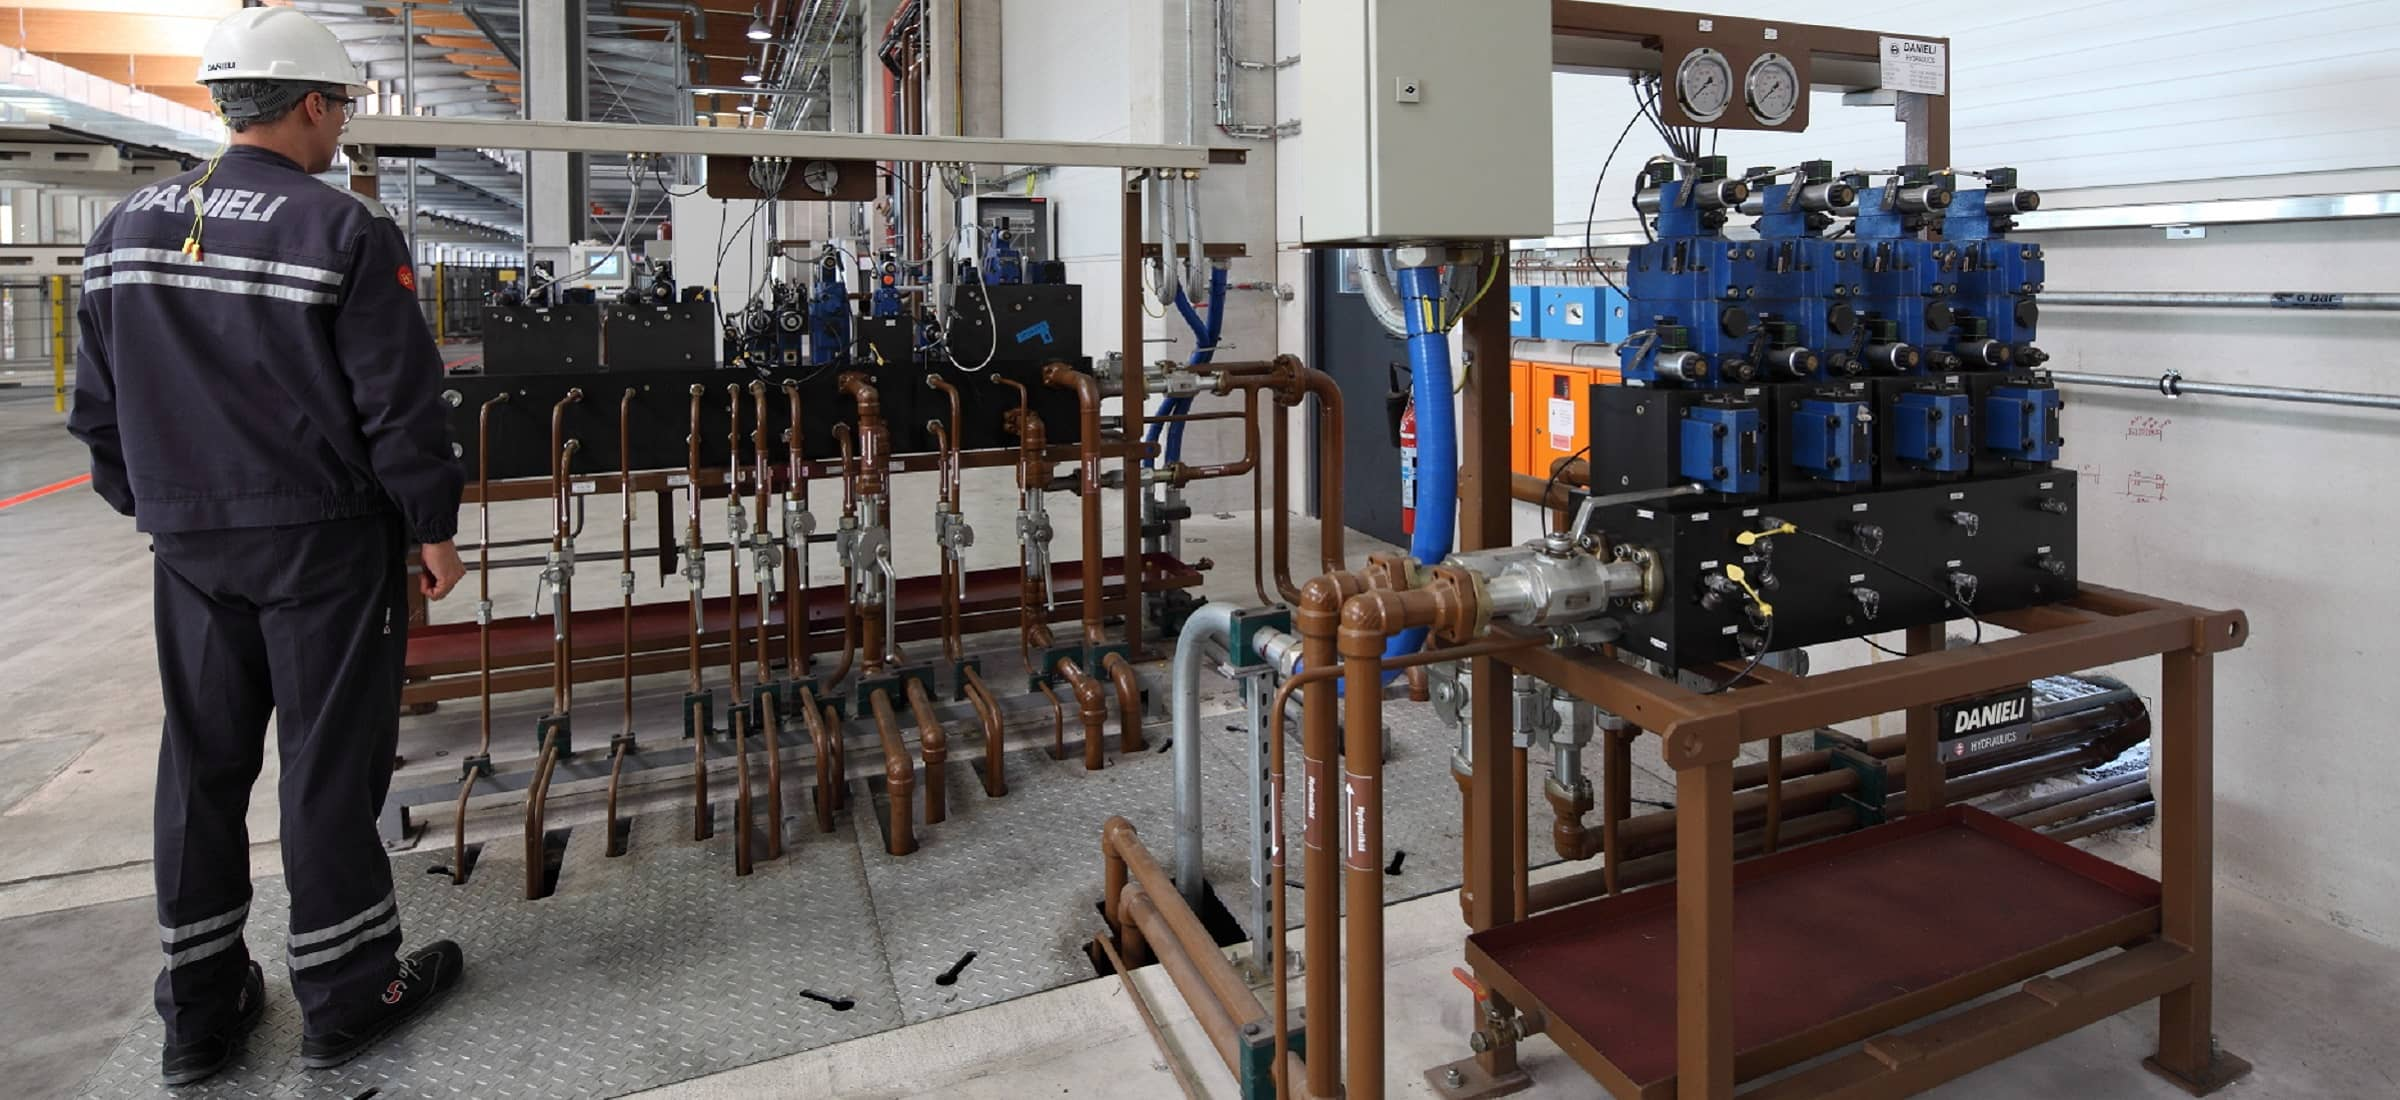 Products › Cross › Valve Stands and Valve Manifolds Modular Valve Stands  designed ‹ Danieli